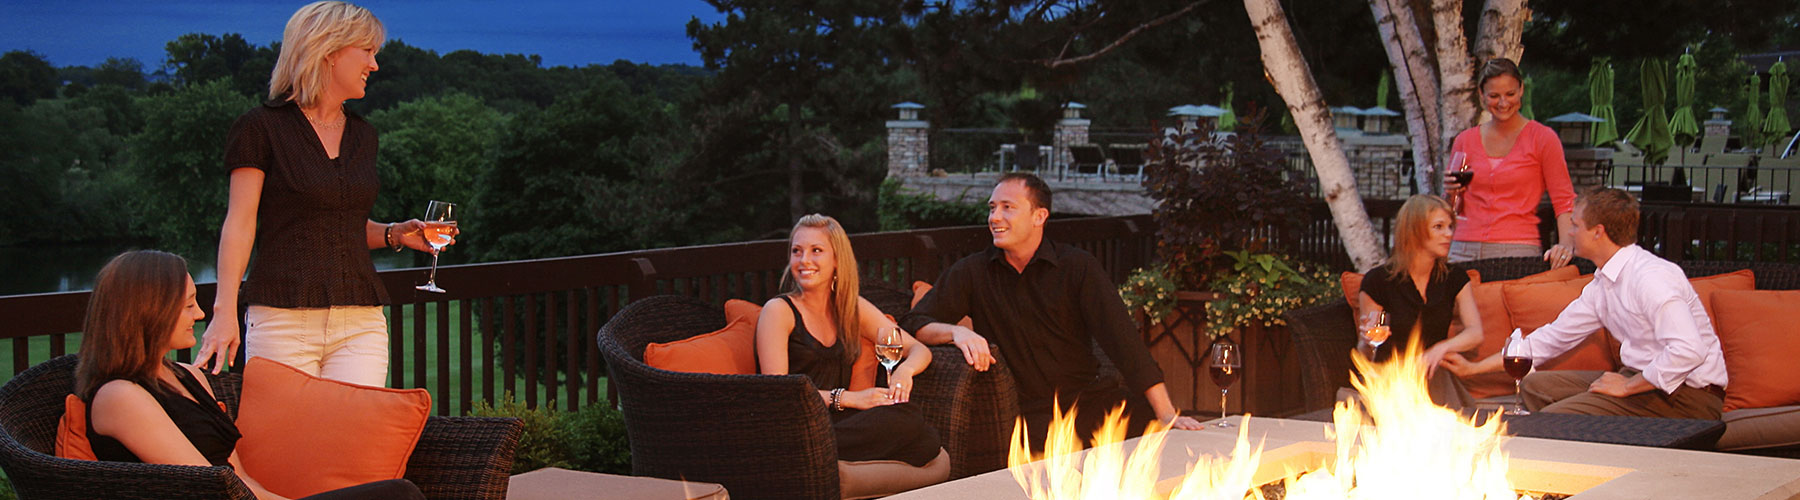 Embers Terrace - Fireside Fun